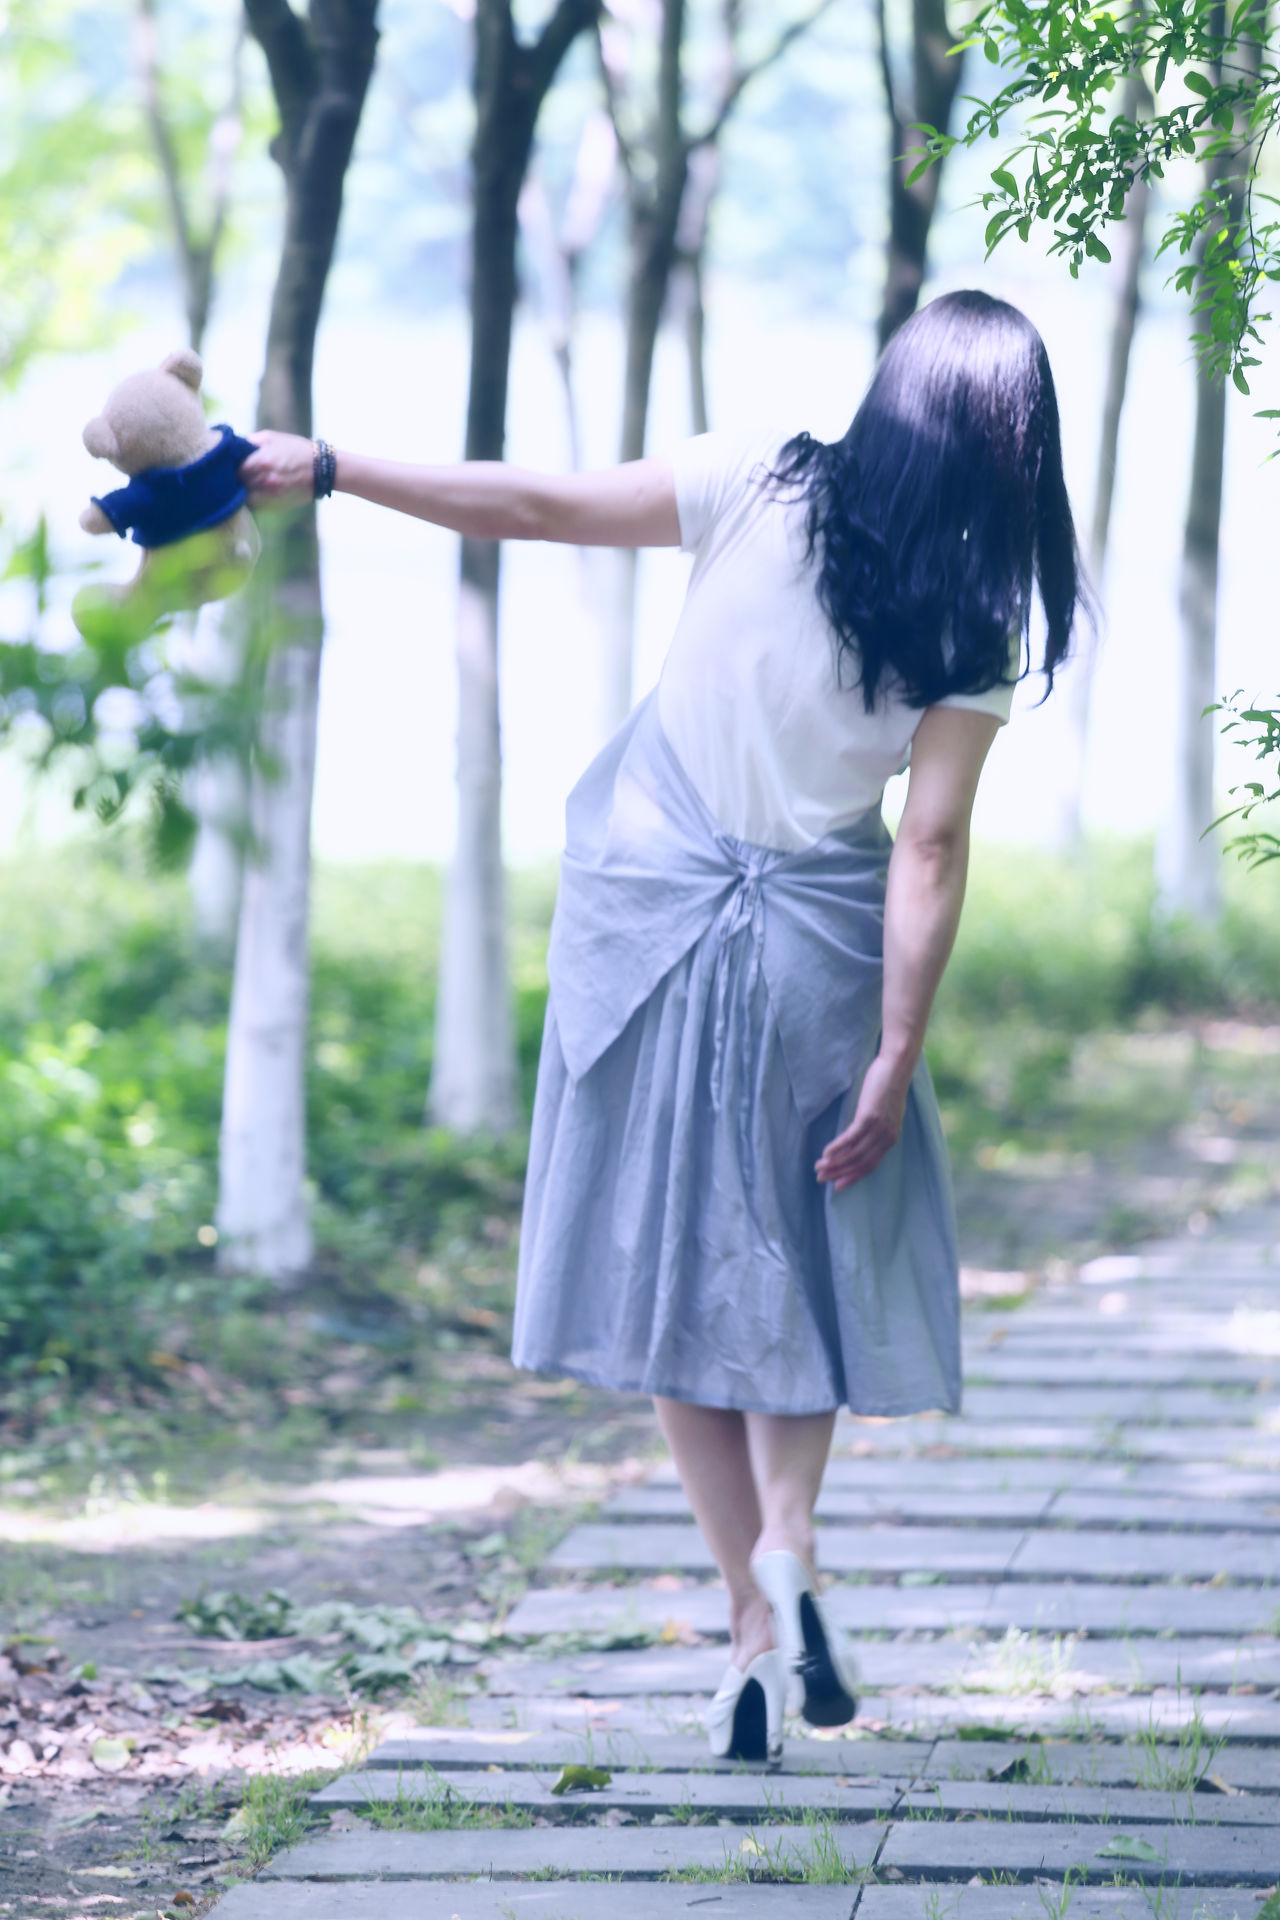 Beautiful stock photos of schmetterling, full length, standing, tree, lifestyles